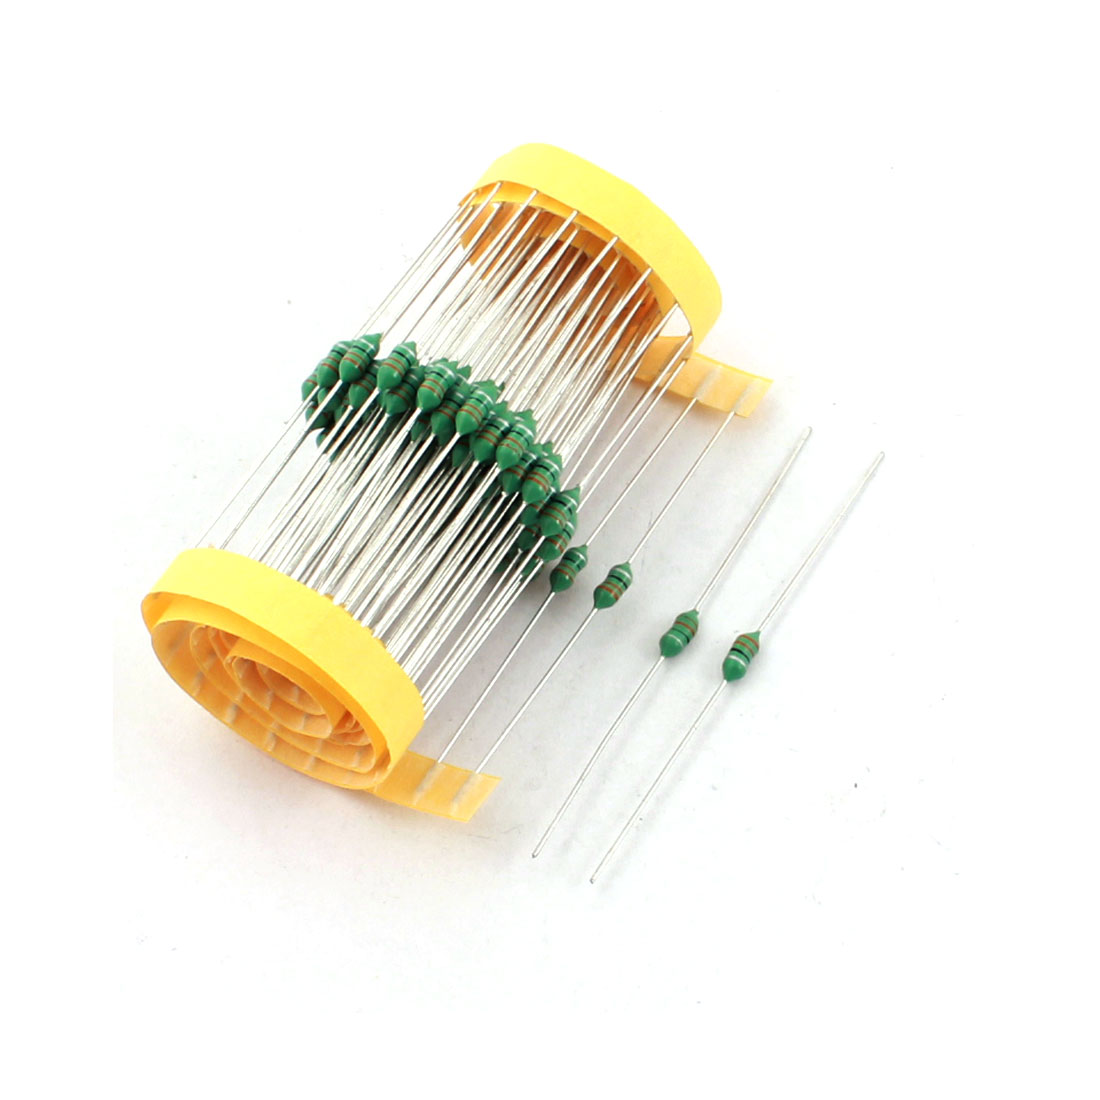 100Pcs Electronic Component 1/2W 33uH 10% Color Ring Inductors 3x7mm